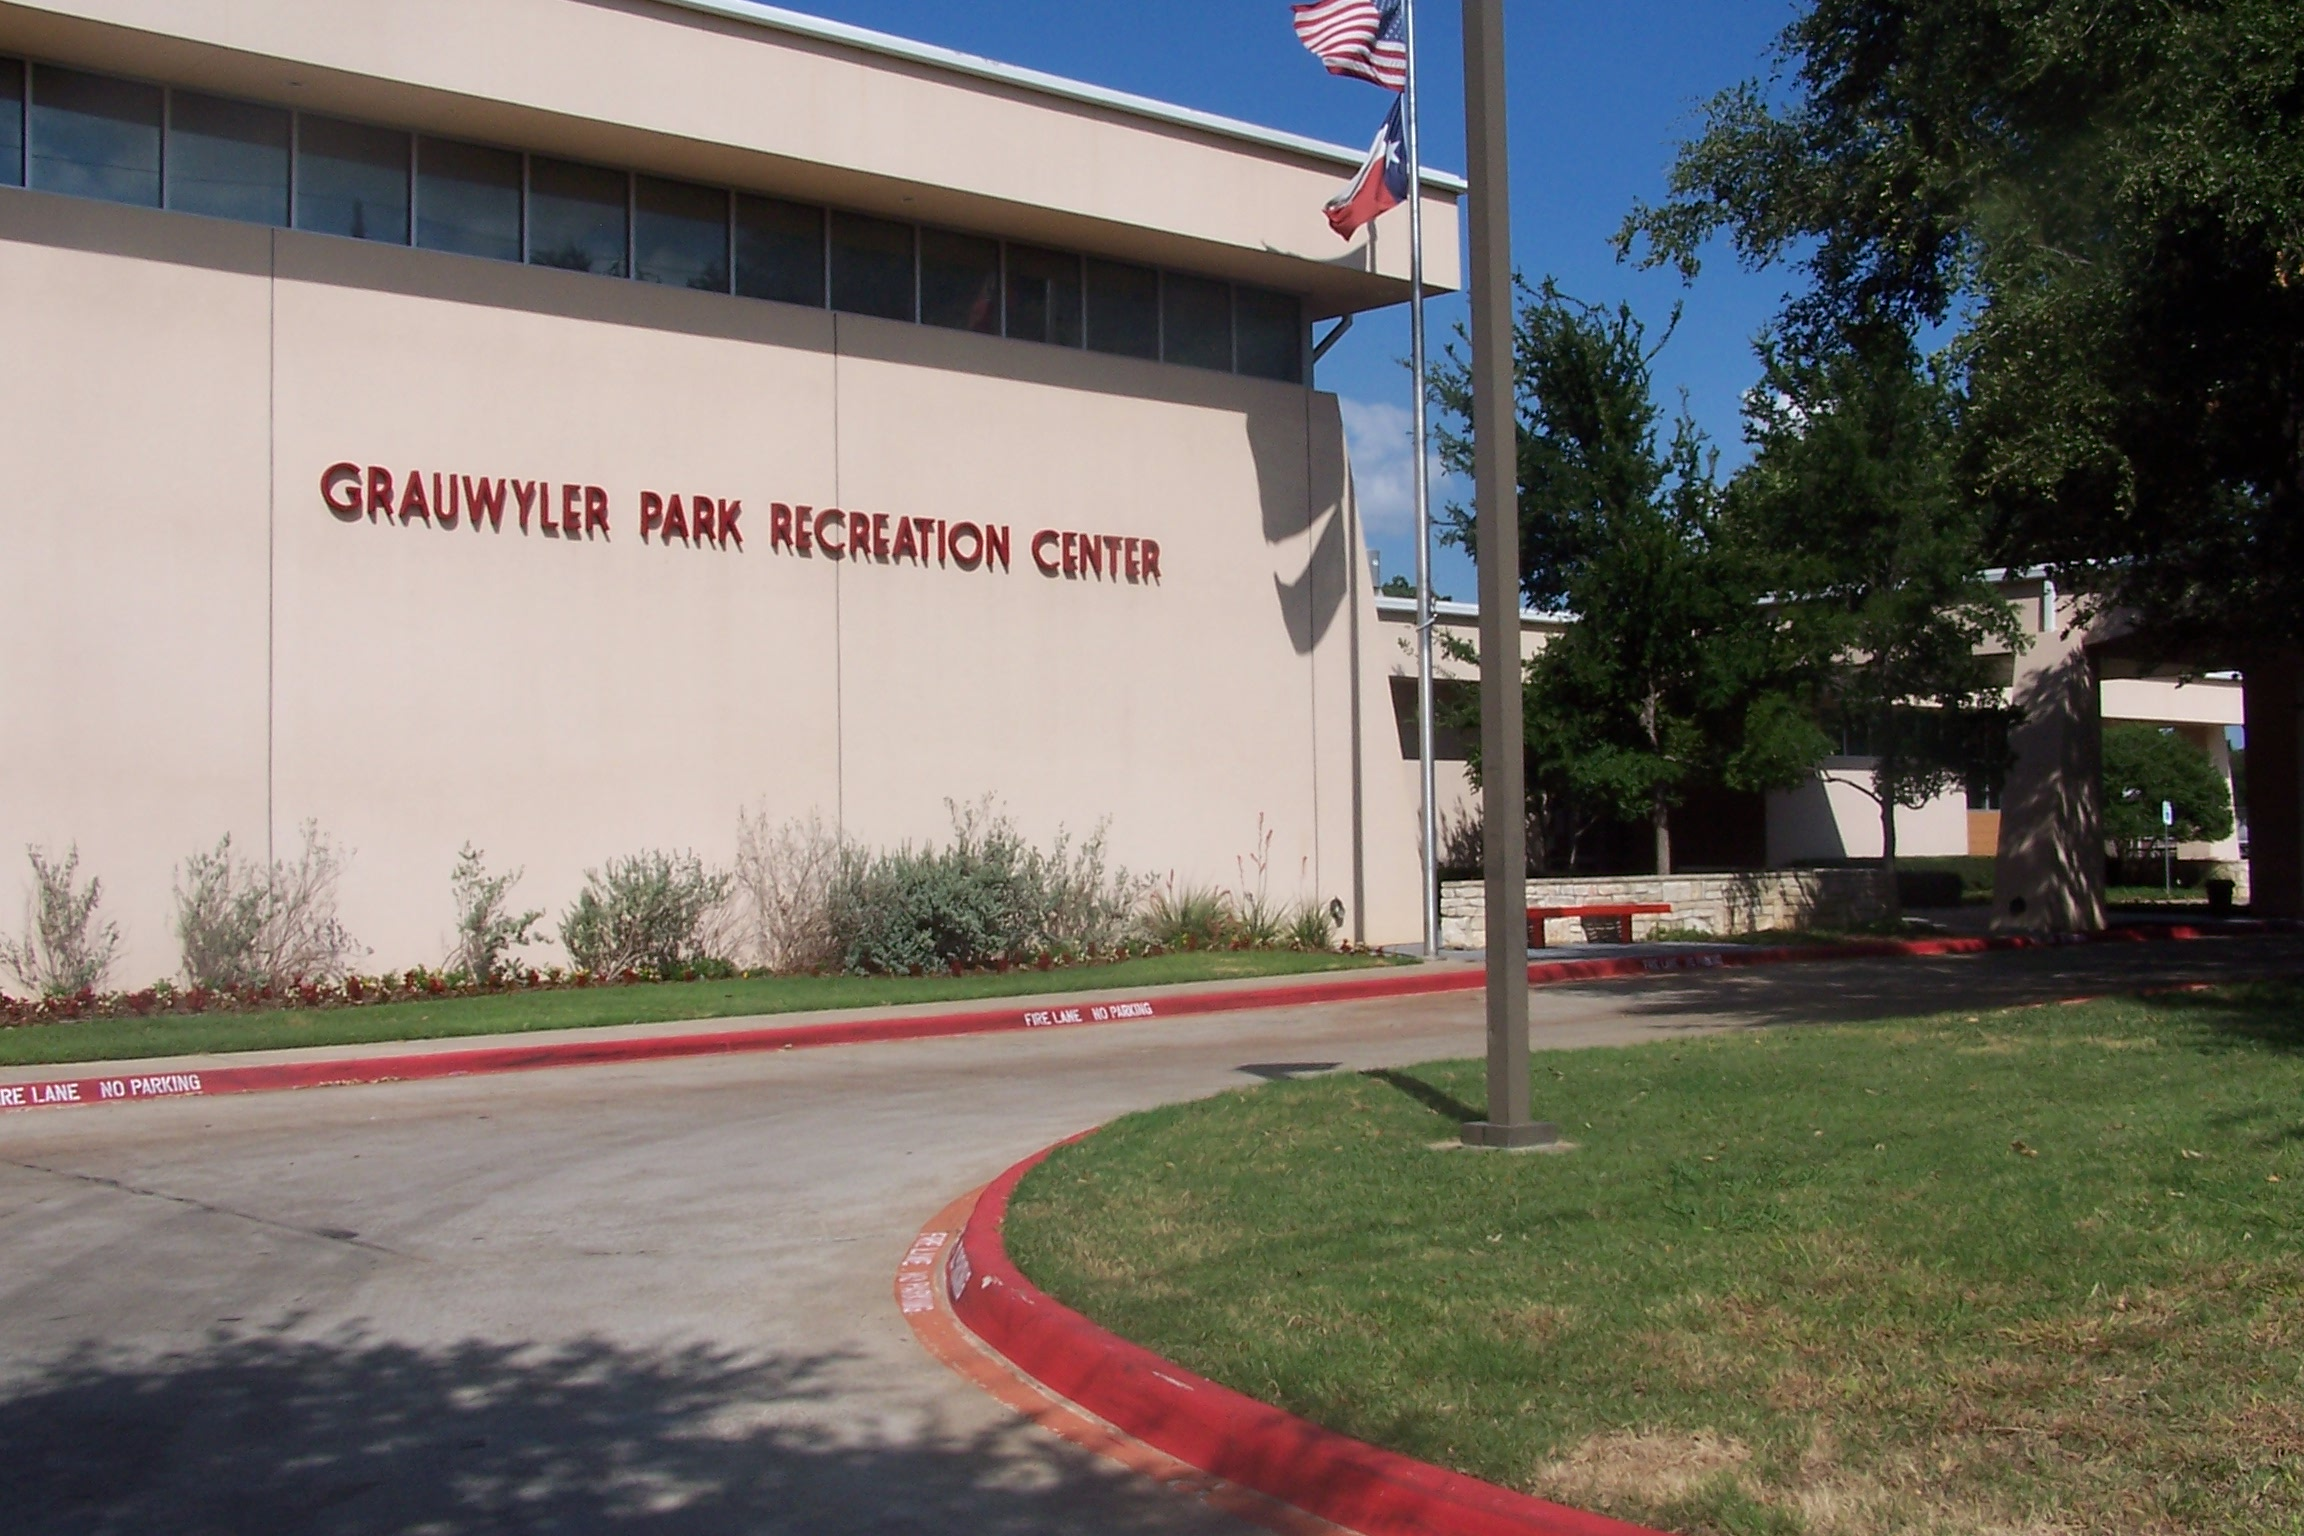 Grauwyler Recreation Center